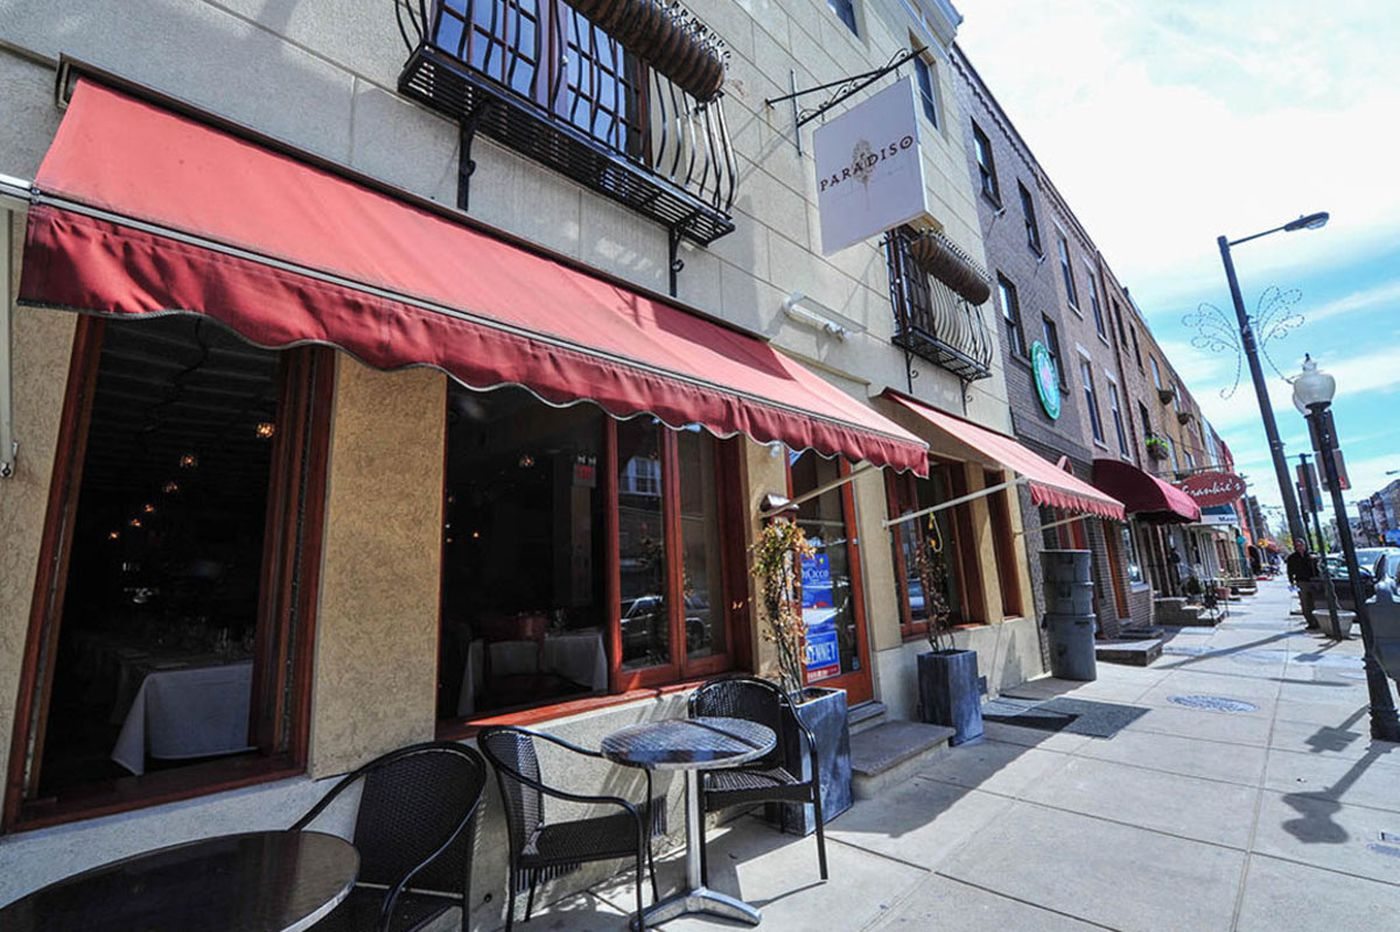 Paradiso, one of the longtime East Passyunk restaurants, to close